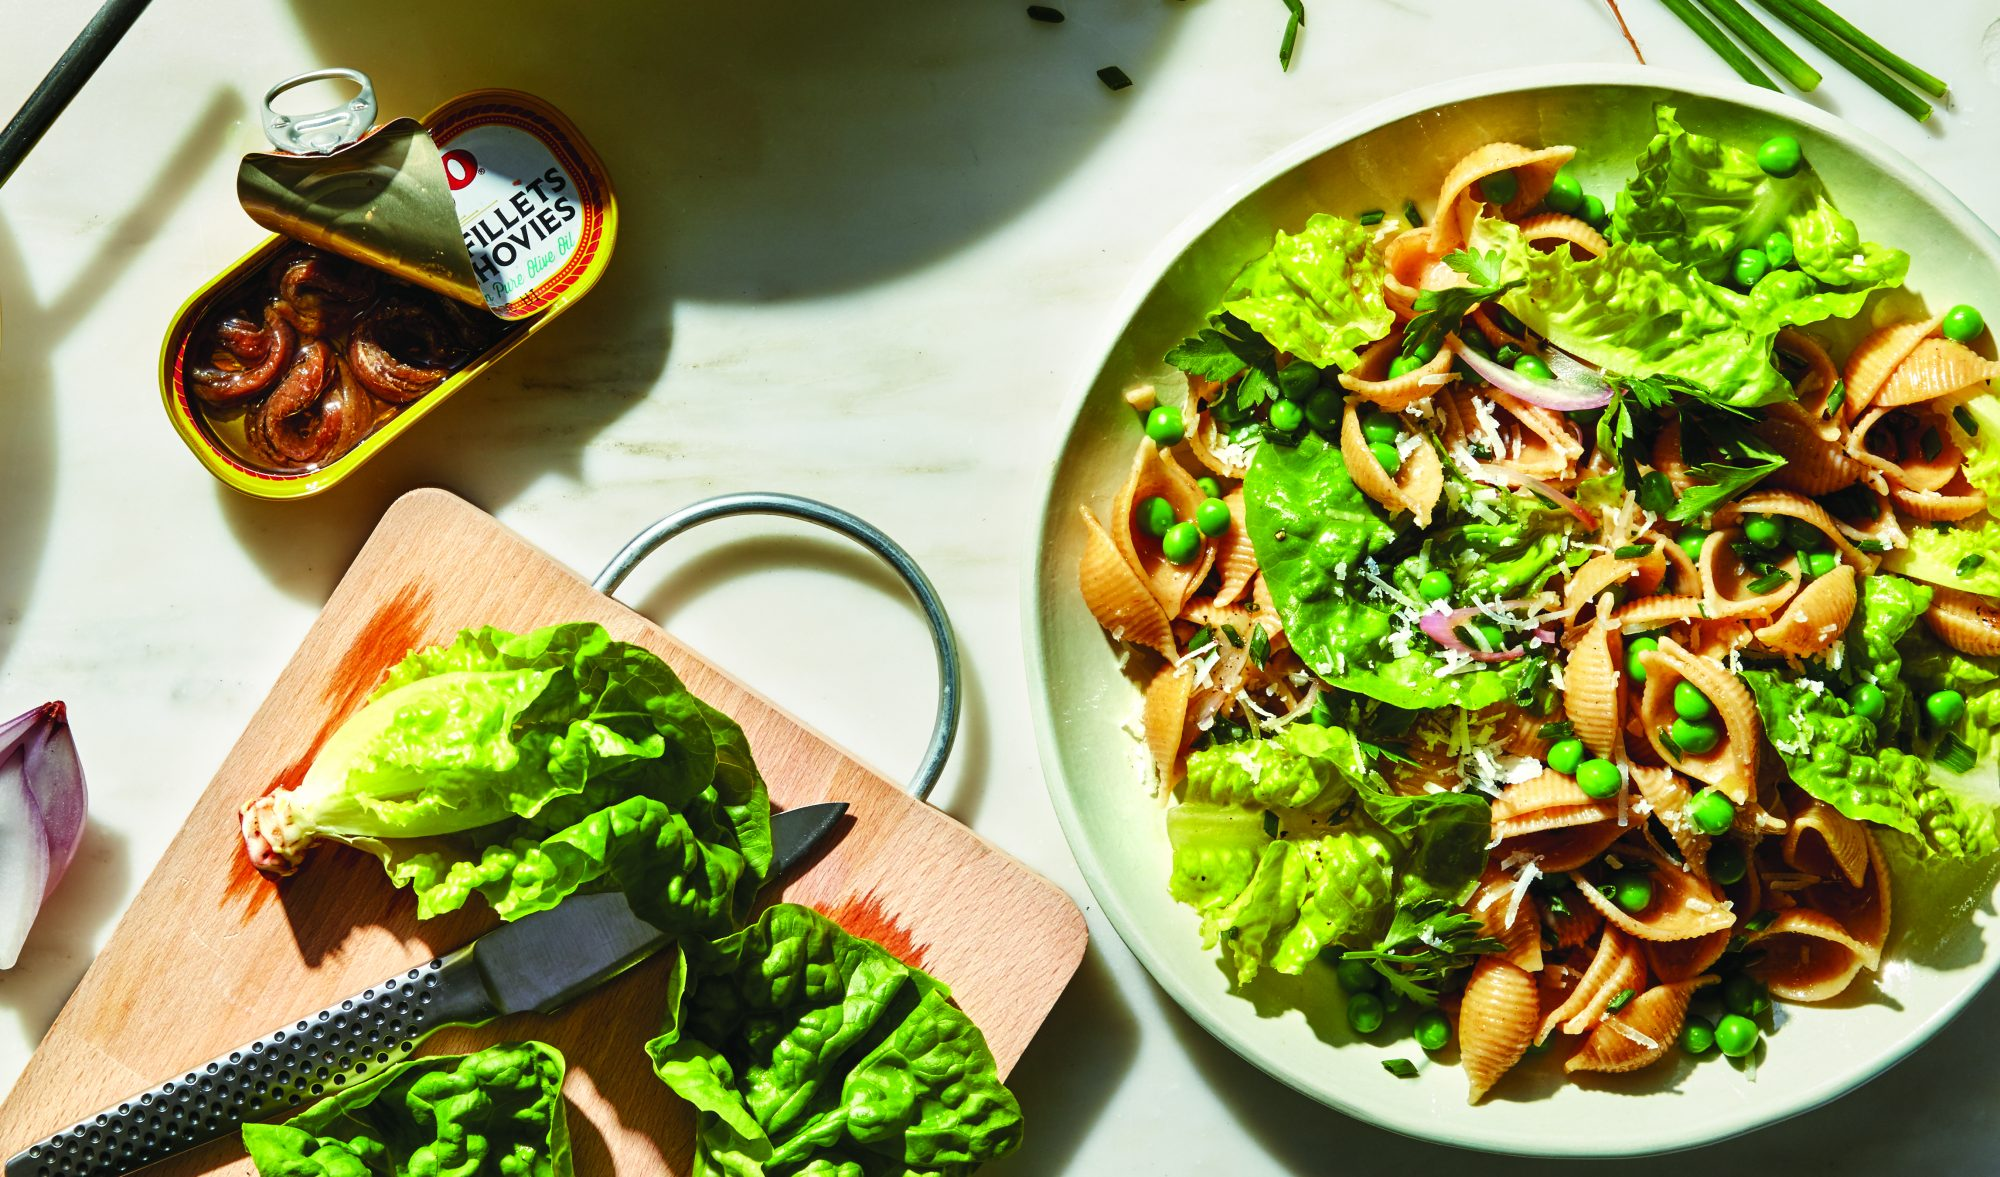 Shells With Bibb Lettuce and Spring Peas